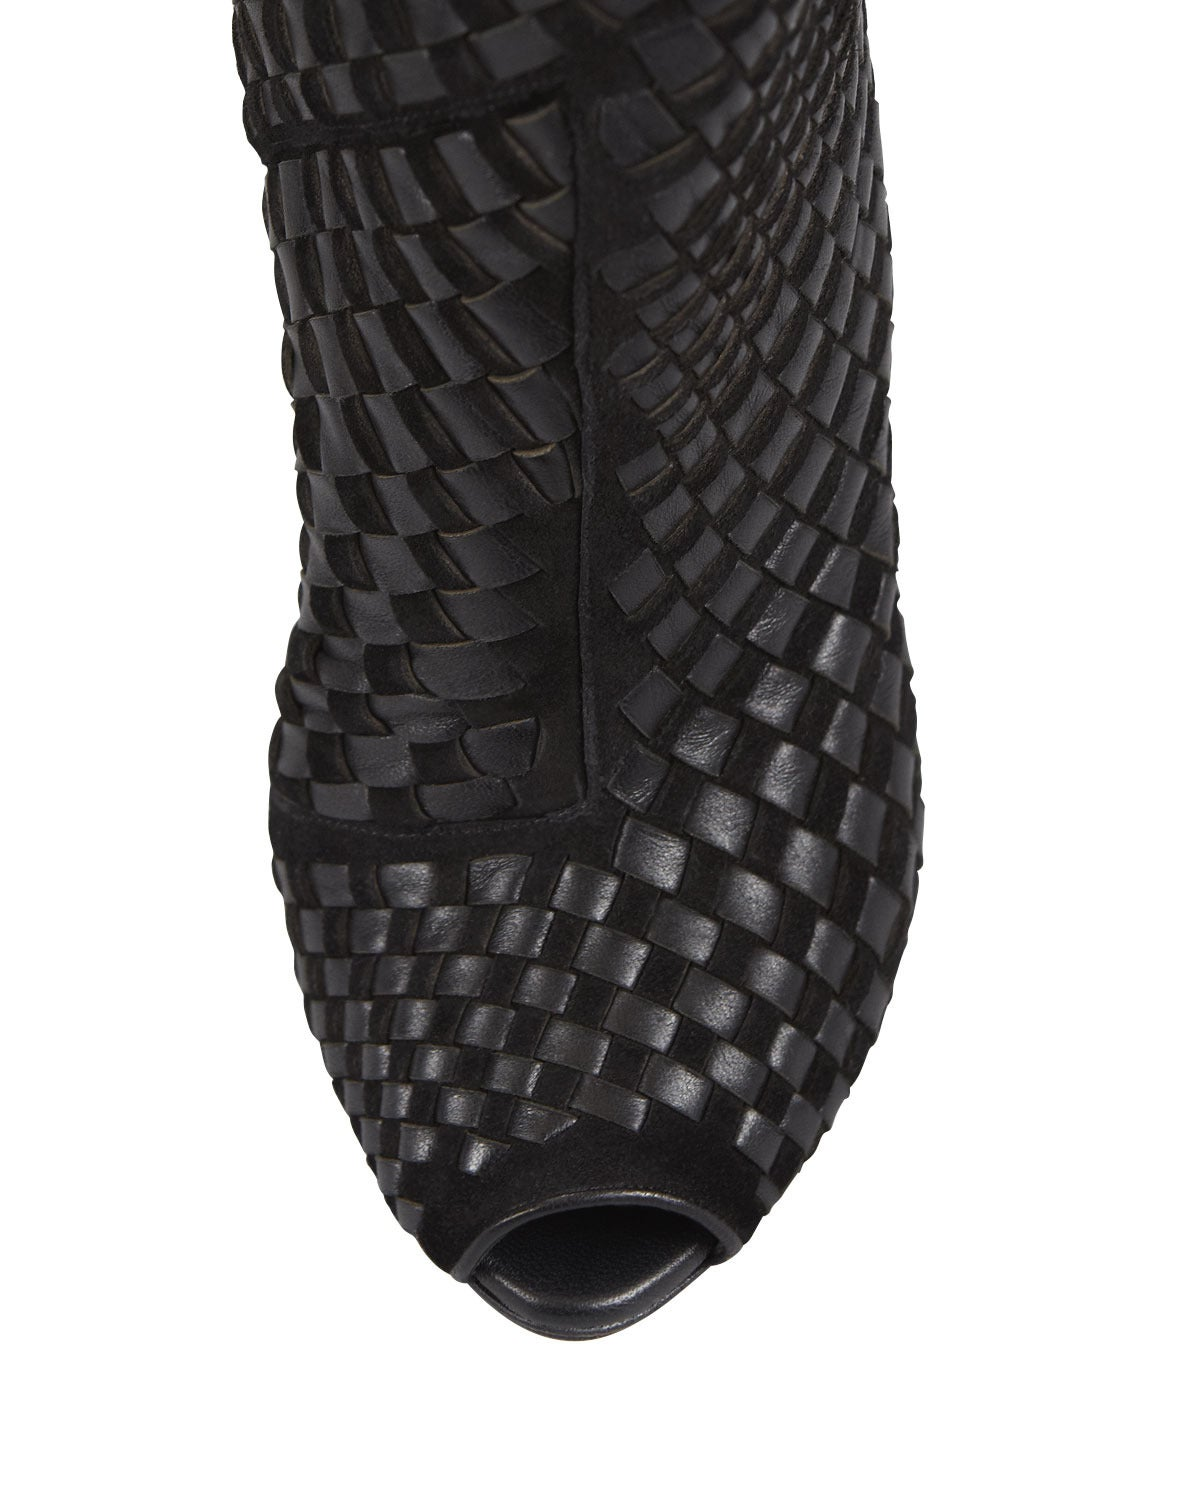 New TOM FORD Black Woven Suede/Leather Over-the-Knee Boot 3